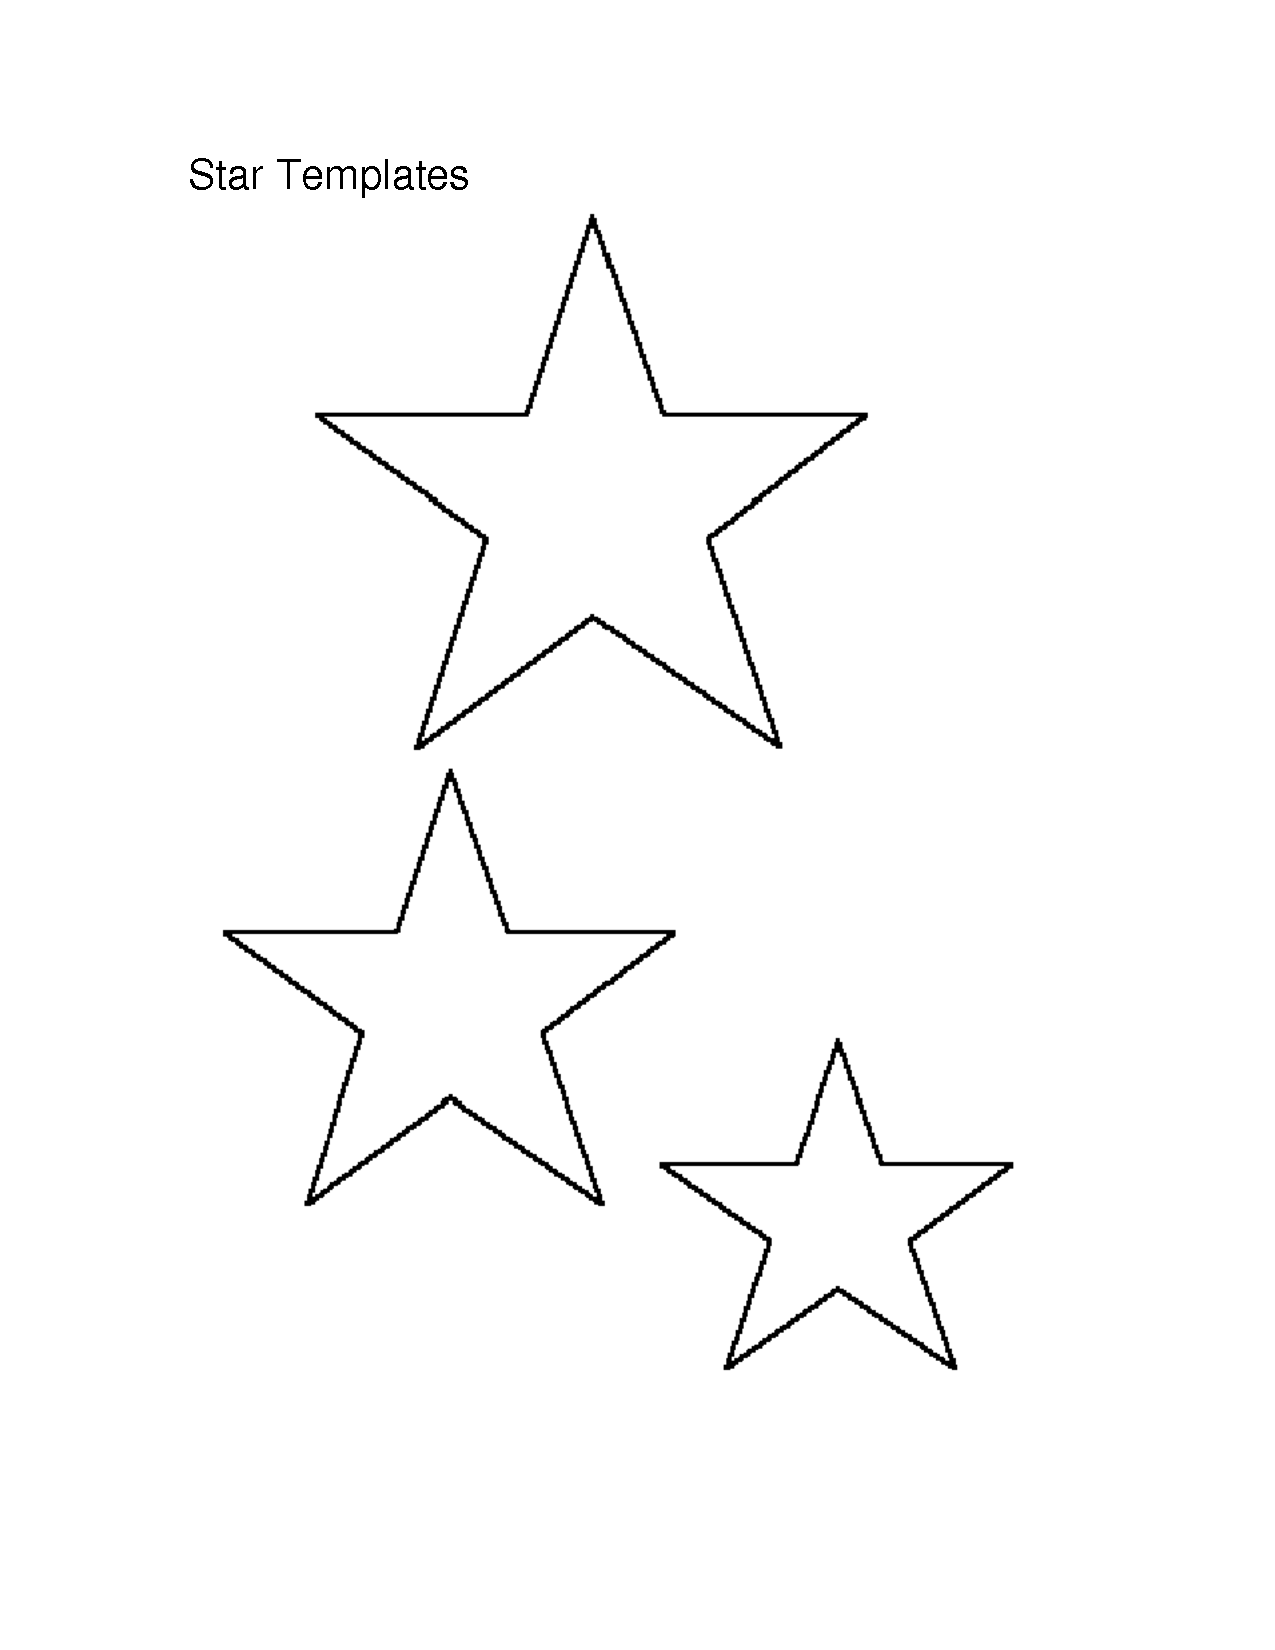 Blank Outline Template. Use The Printable Outline For Crafts ...